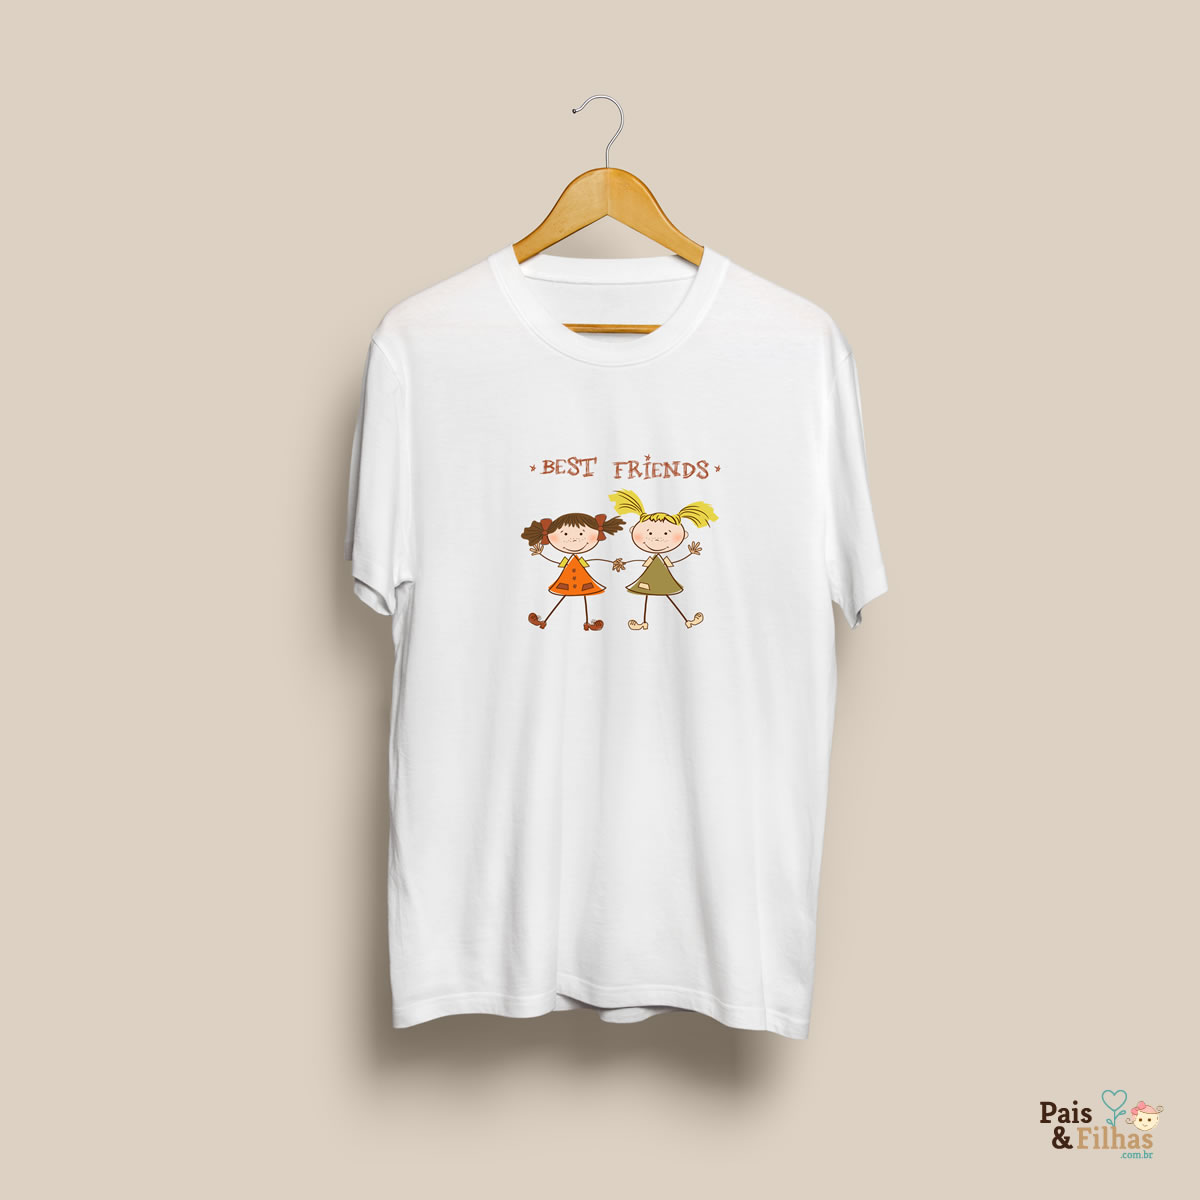 Camiseta personalizada Best Friends